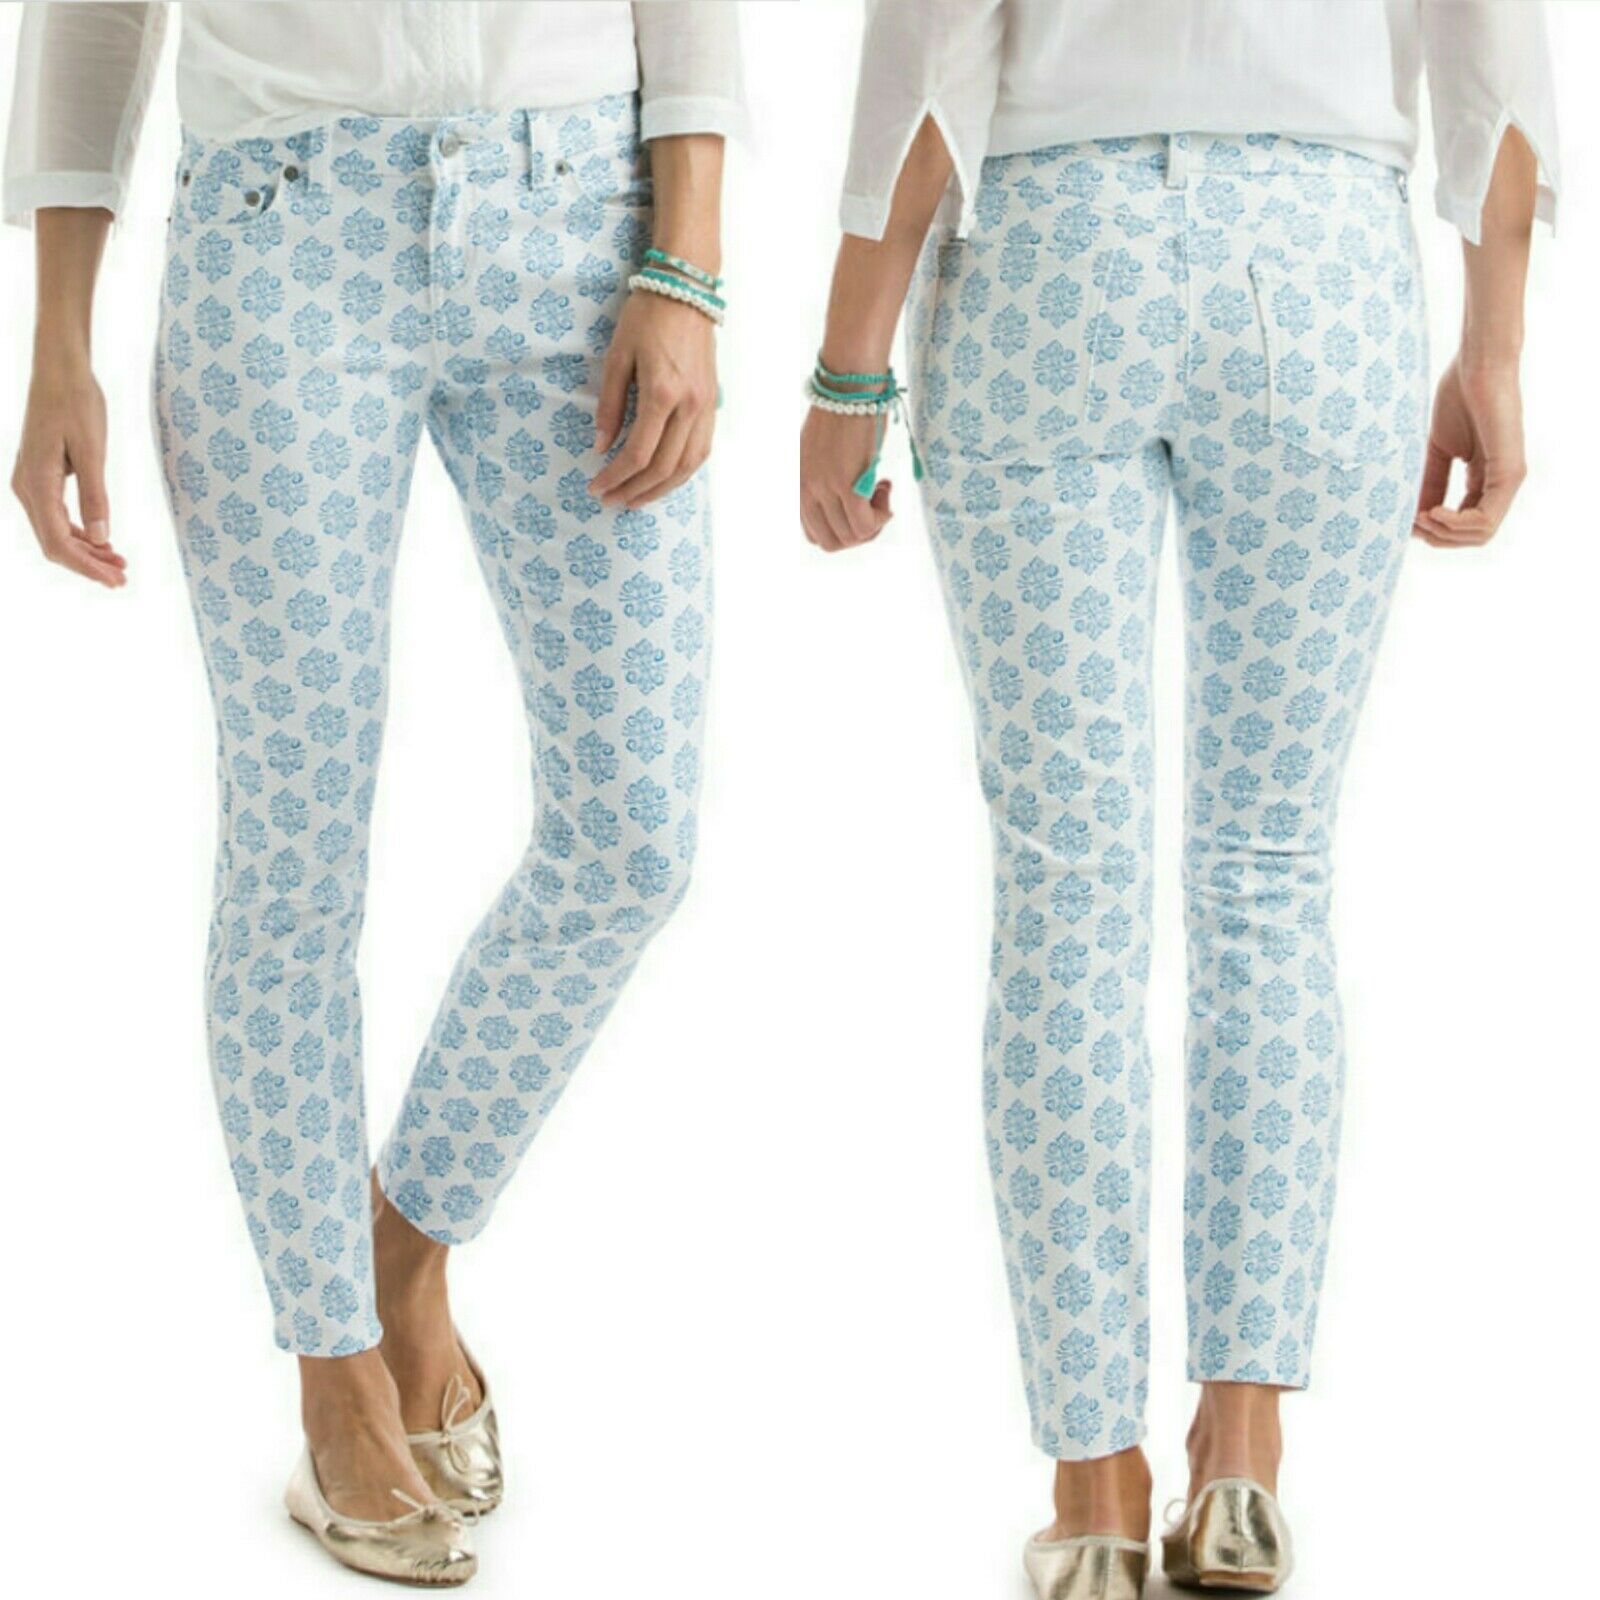 NWT Vineyard Vines Medallion Print bluee And White mid rise Skinny Jeans Size 8